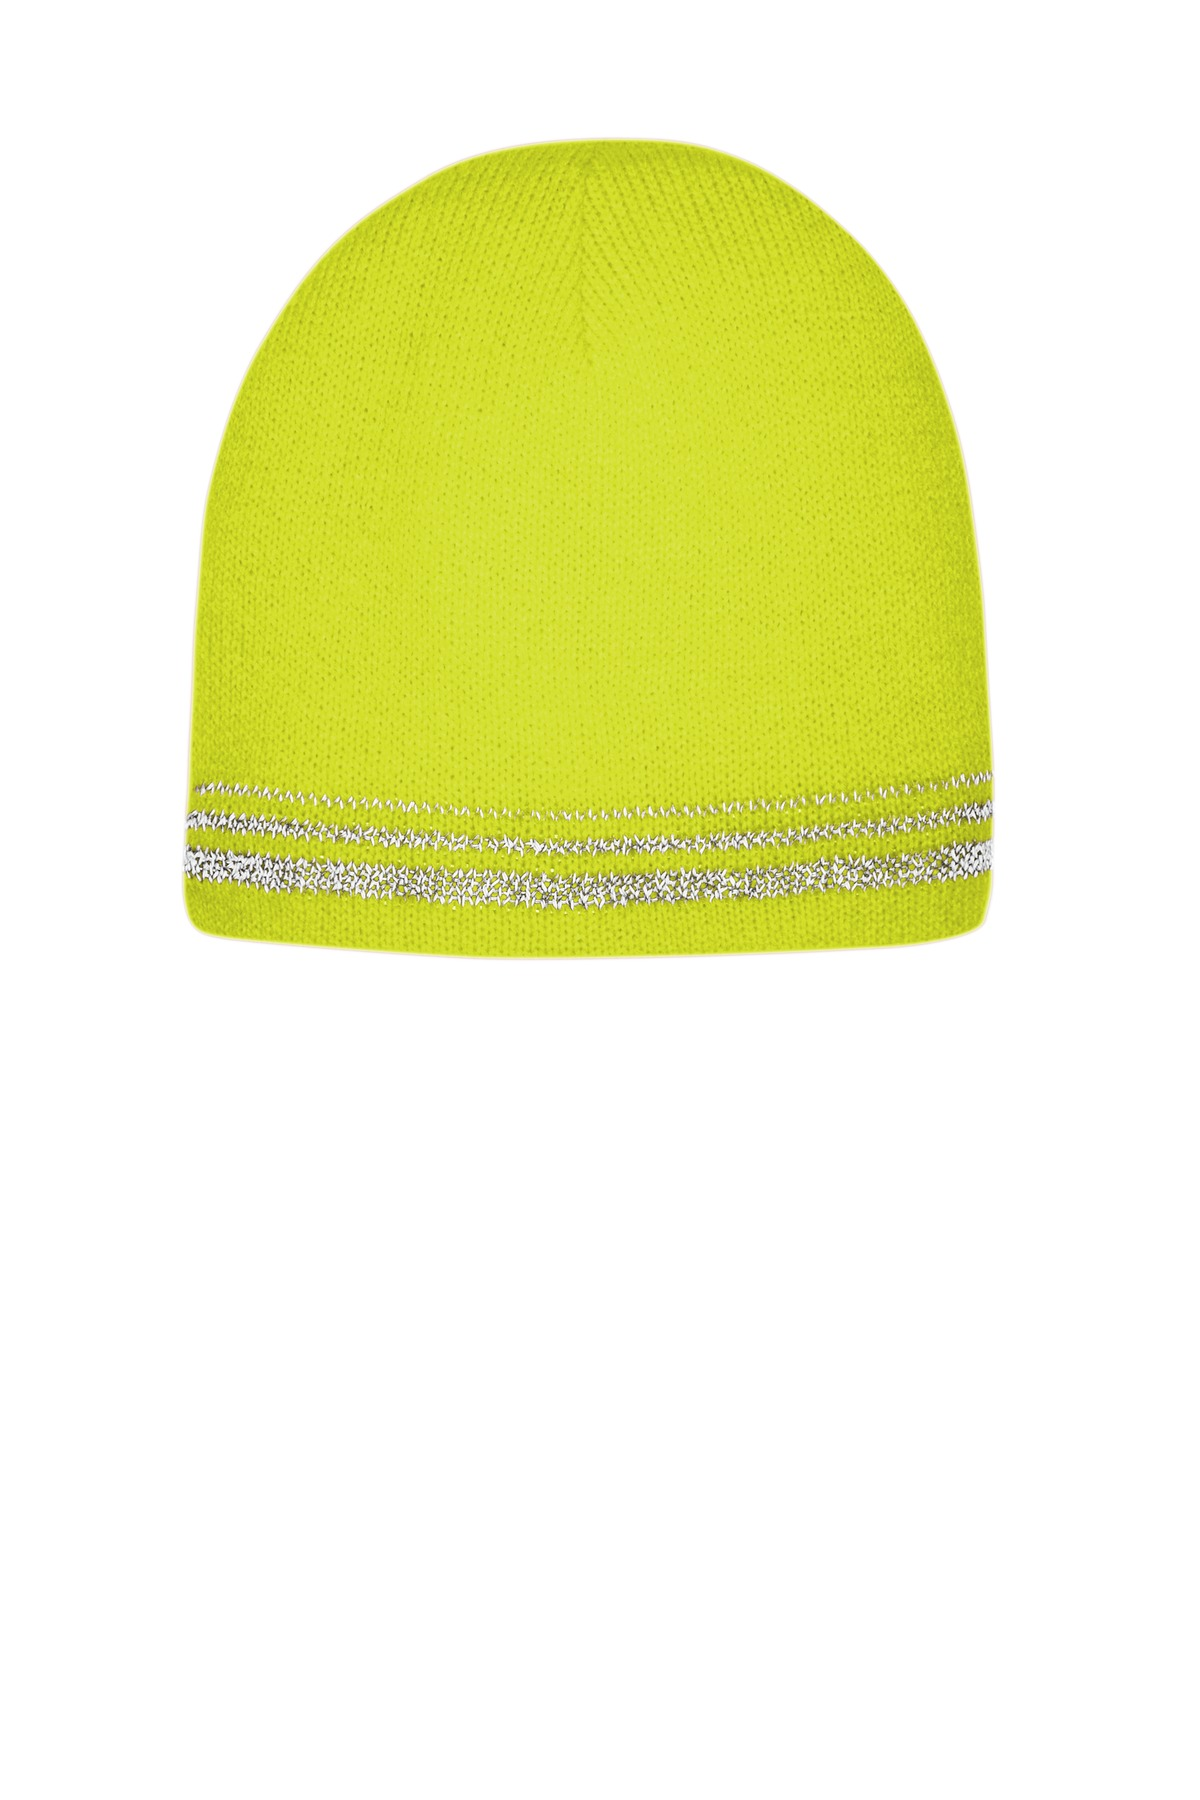 CornerStone  ®   Lined Enhanced Visibility with Reflective Stripes Beanie CS804 - Safety Yellow/ Reflective